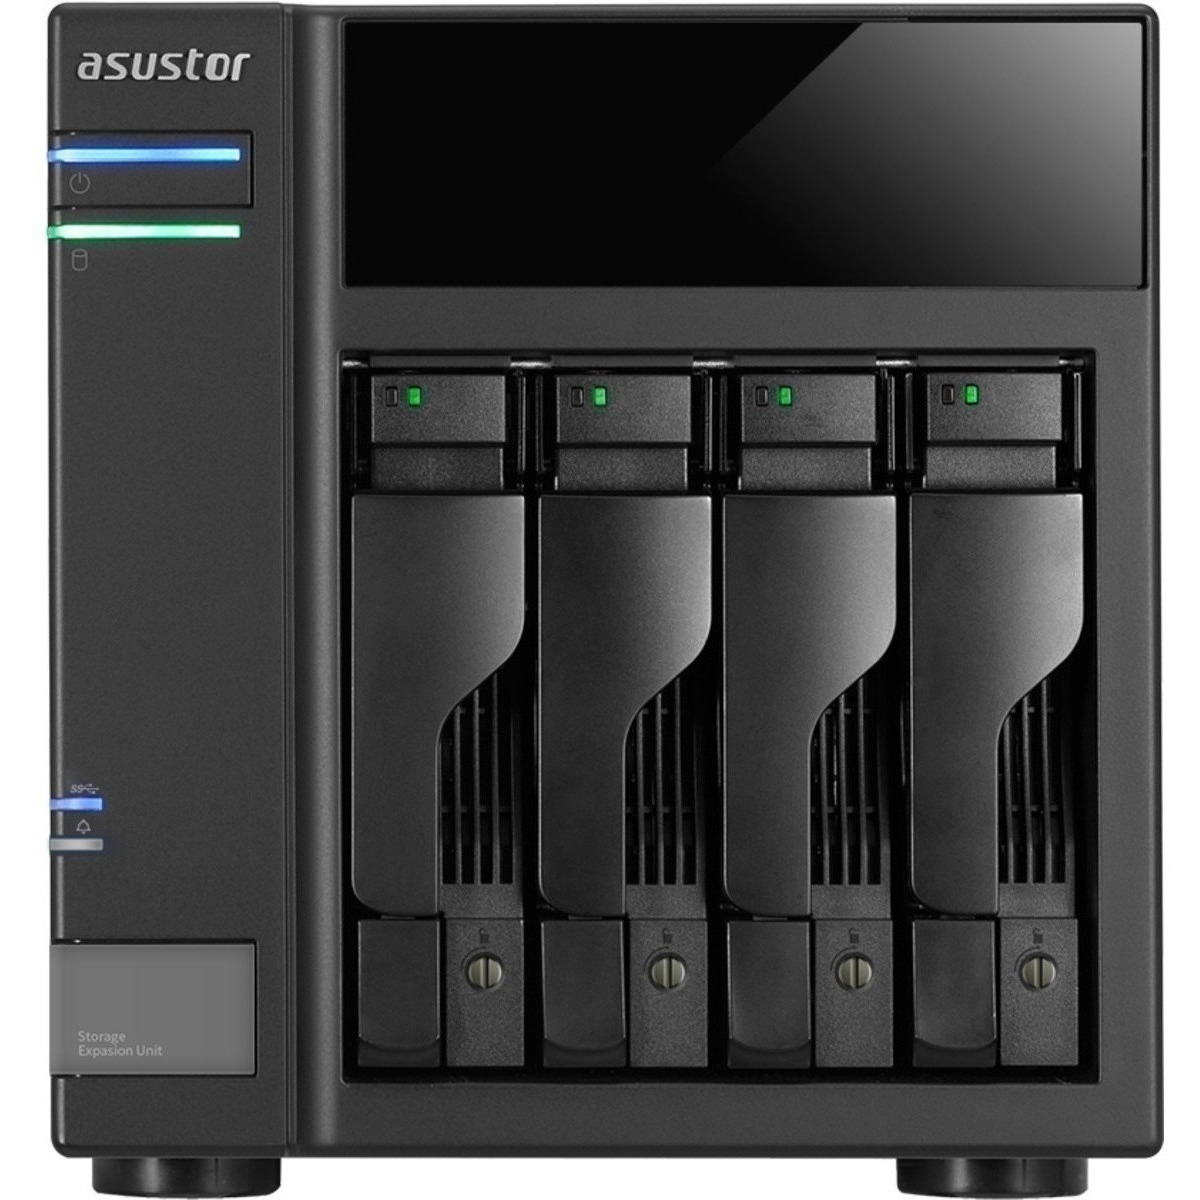 buy $658 ASUSTOR AS6004U 8tb Desktop Expansion Enclosure 4x2000gb Seagate IronWolf ST2000VN004 3.5 5900rpm SATA 6Gb/s HDD NAS Class Drives Installed - Burn-In Tested - nas headquarters buy network attached storage server device das new sale raid-5 free shipping usa AS6004U